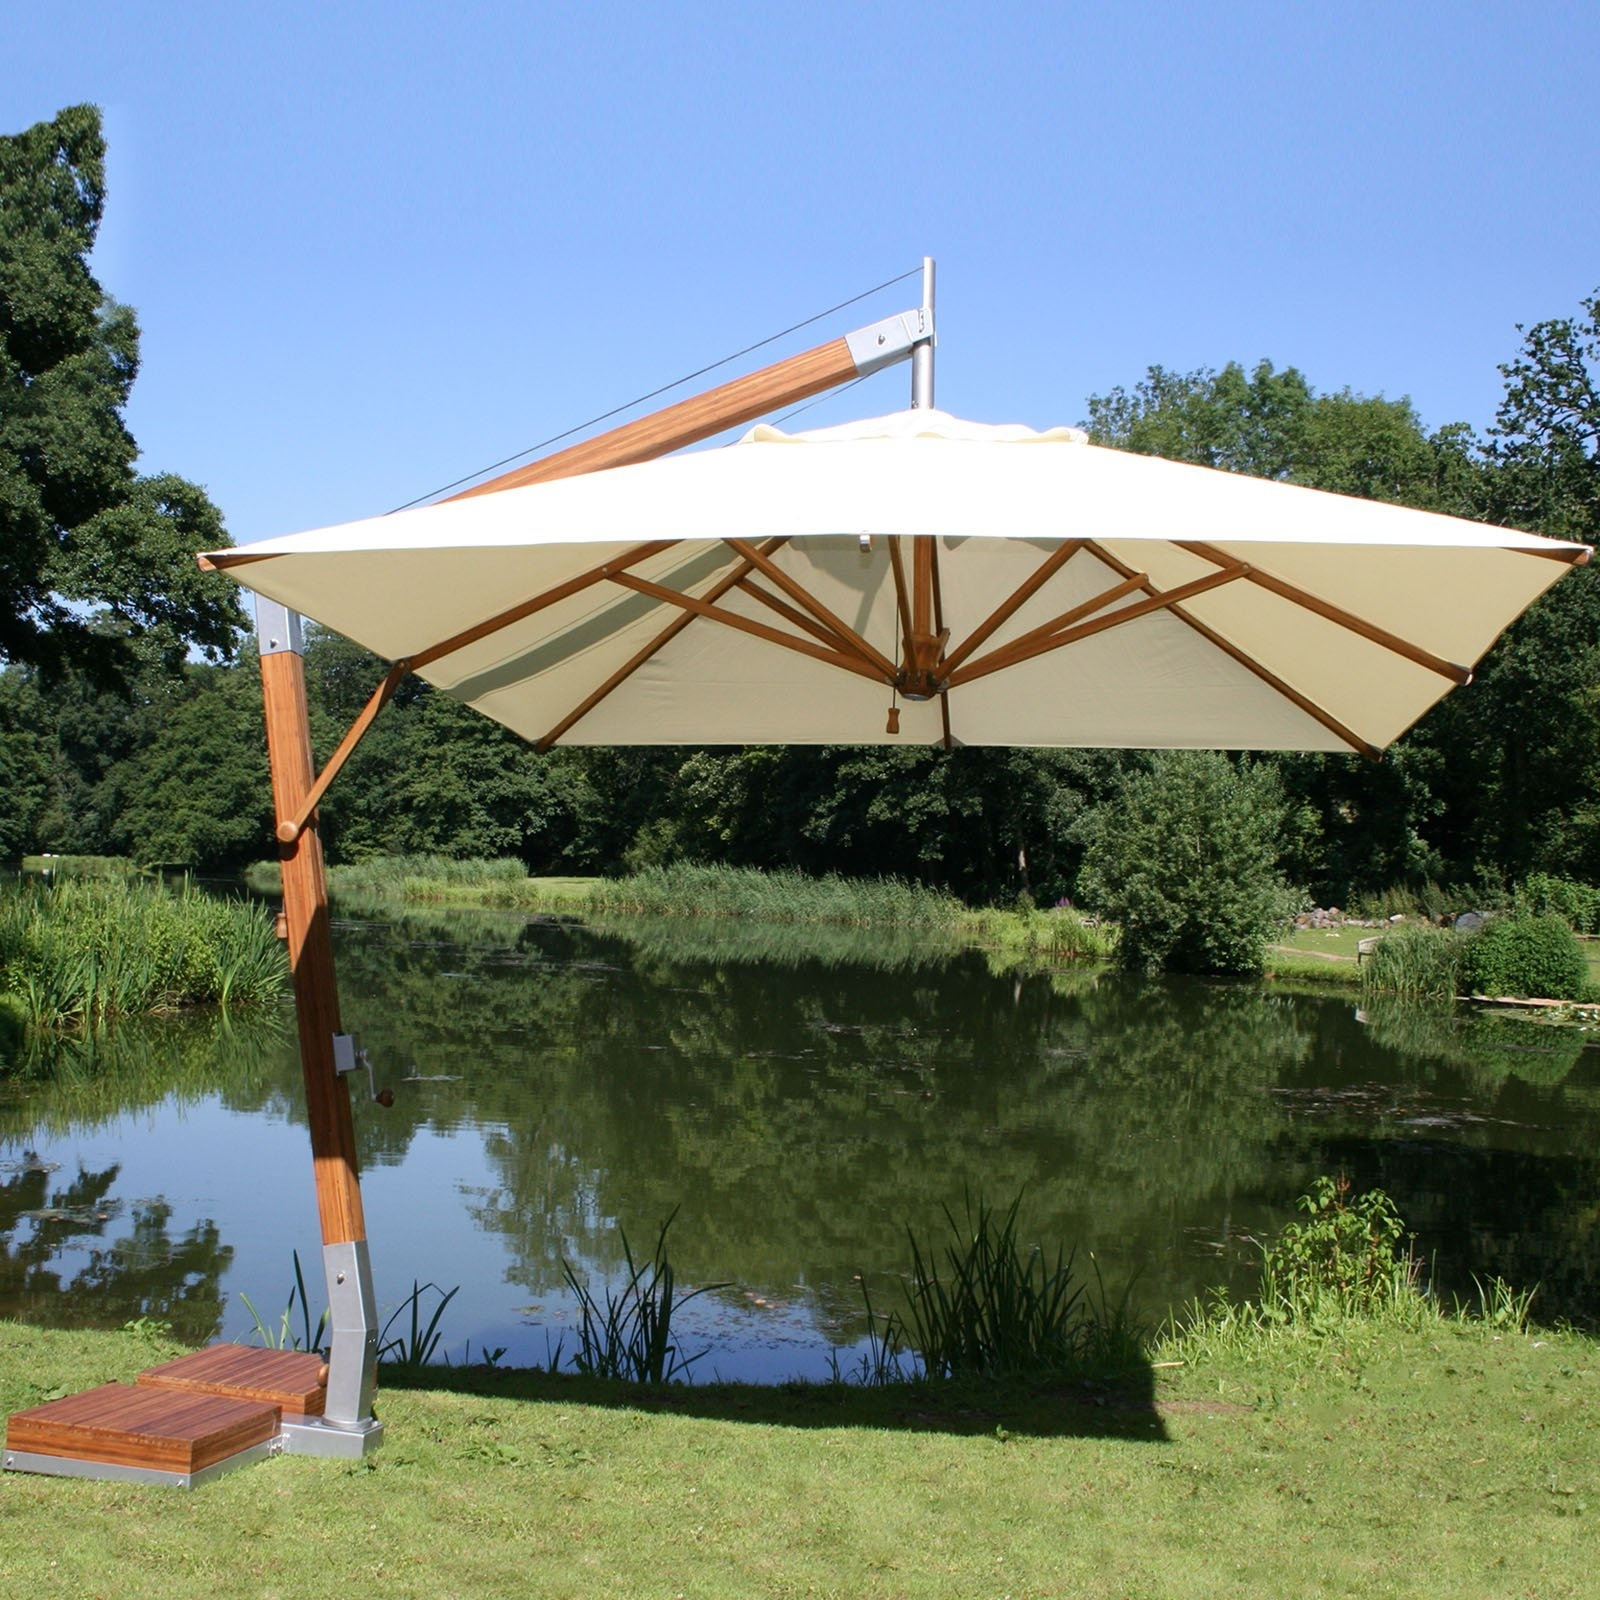 Offset Patio Umbrellas With Base In Most Recent Furniture: White Offset Patio Umbrellas With Bamboo At Hayneedle (View 15 of 20)